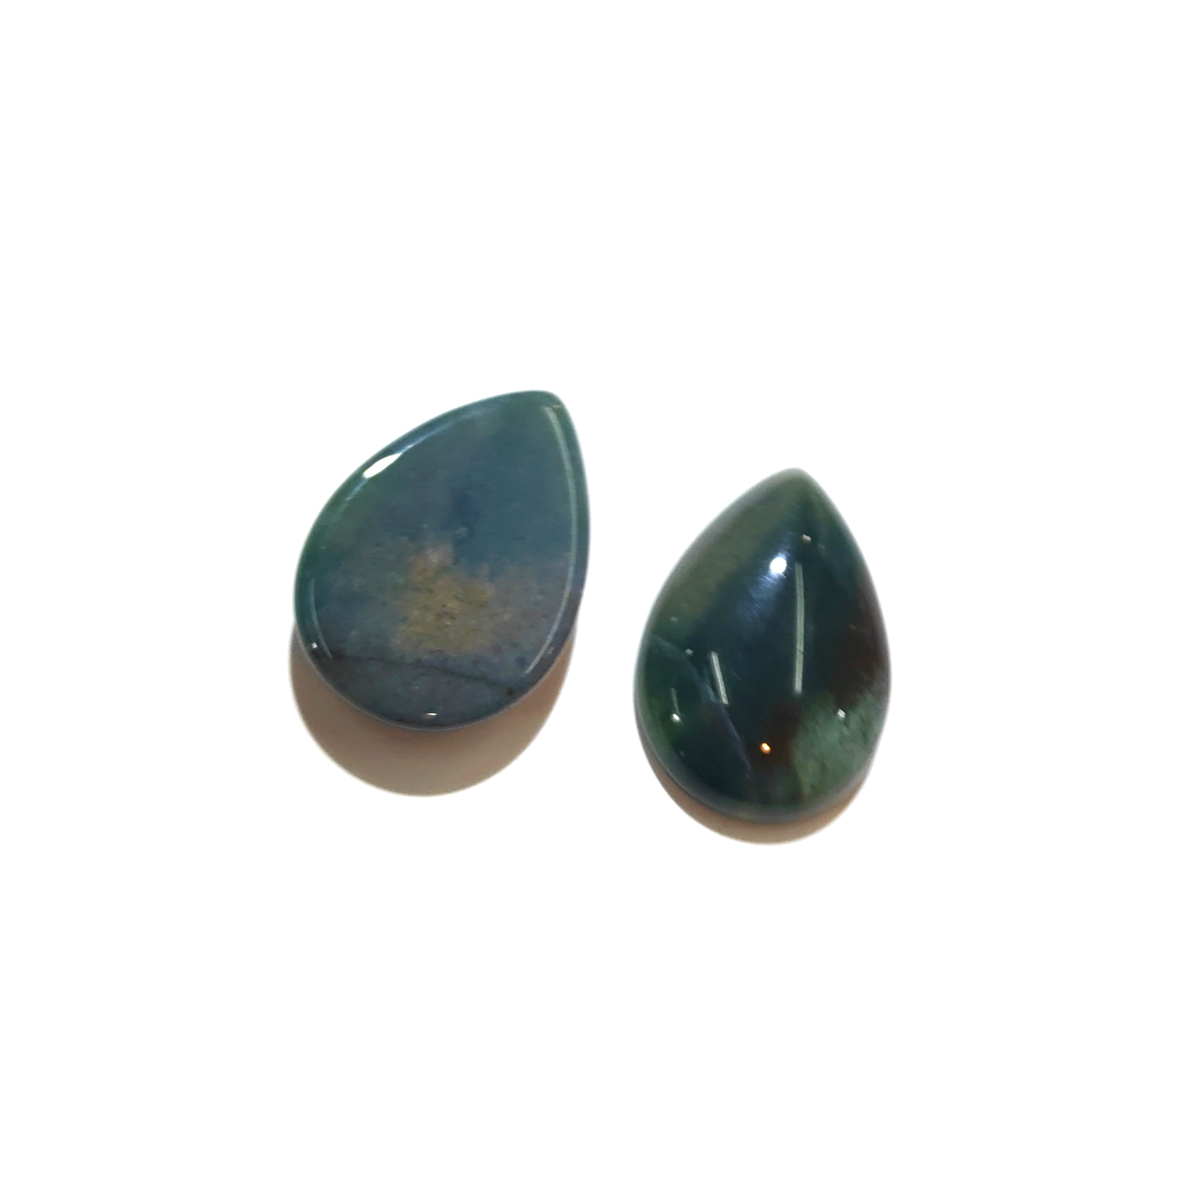 Wholesale 10 PCS India Agates Natural Stone Pendants for Jewelry Making Cabochon Water Drop Shape No Hole Beads for DIY Necklace in Jewelry Findings Components from Jewelry Accessories